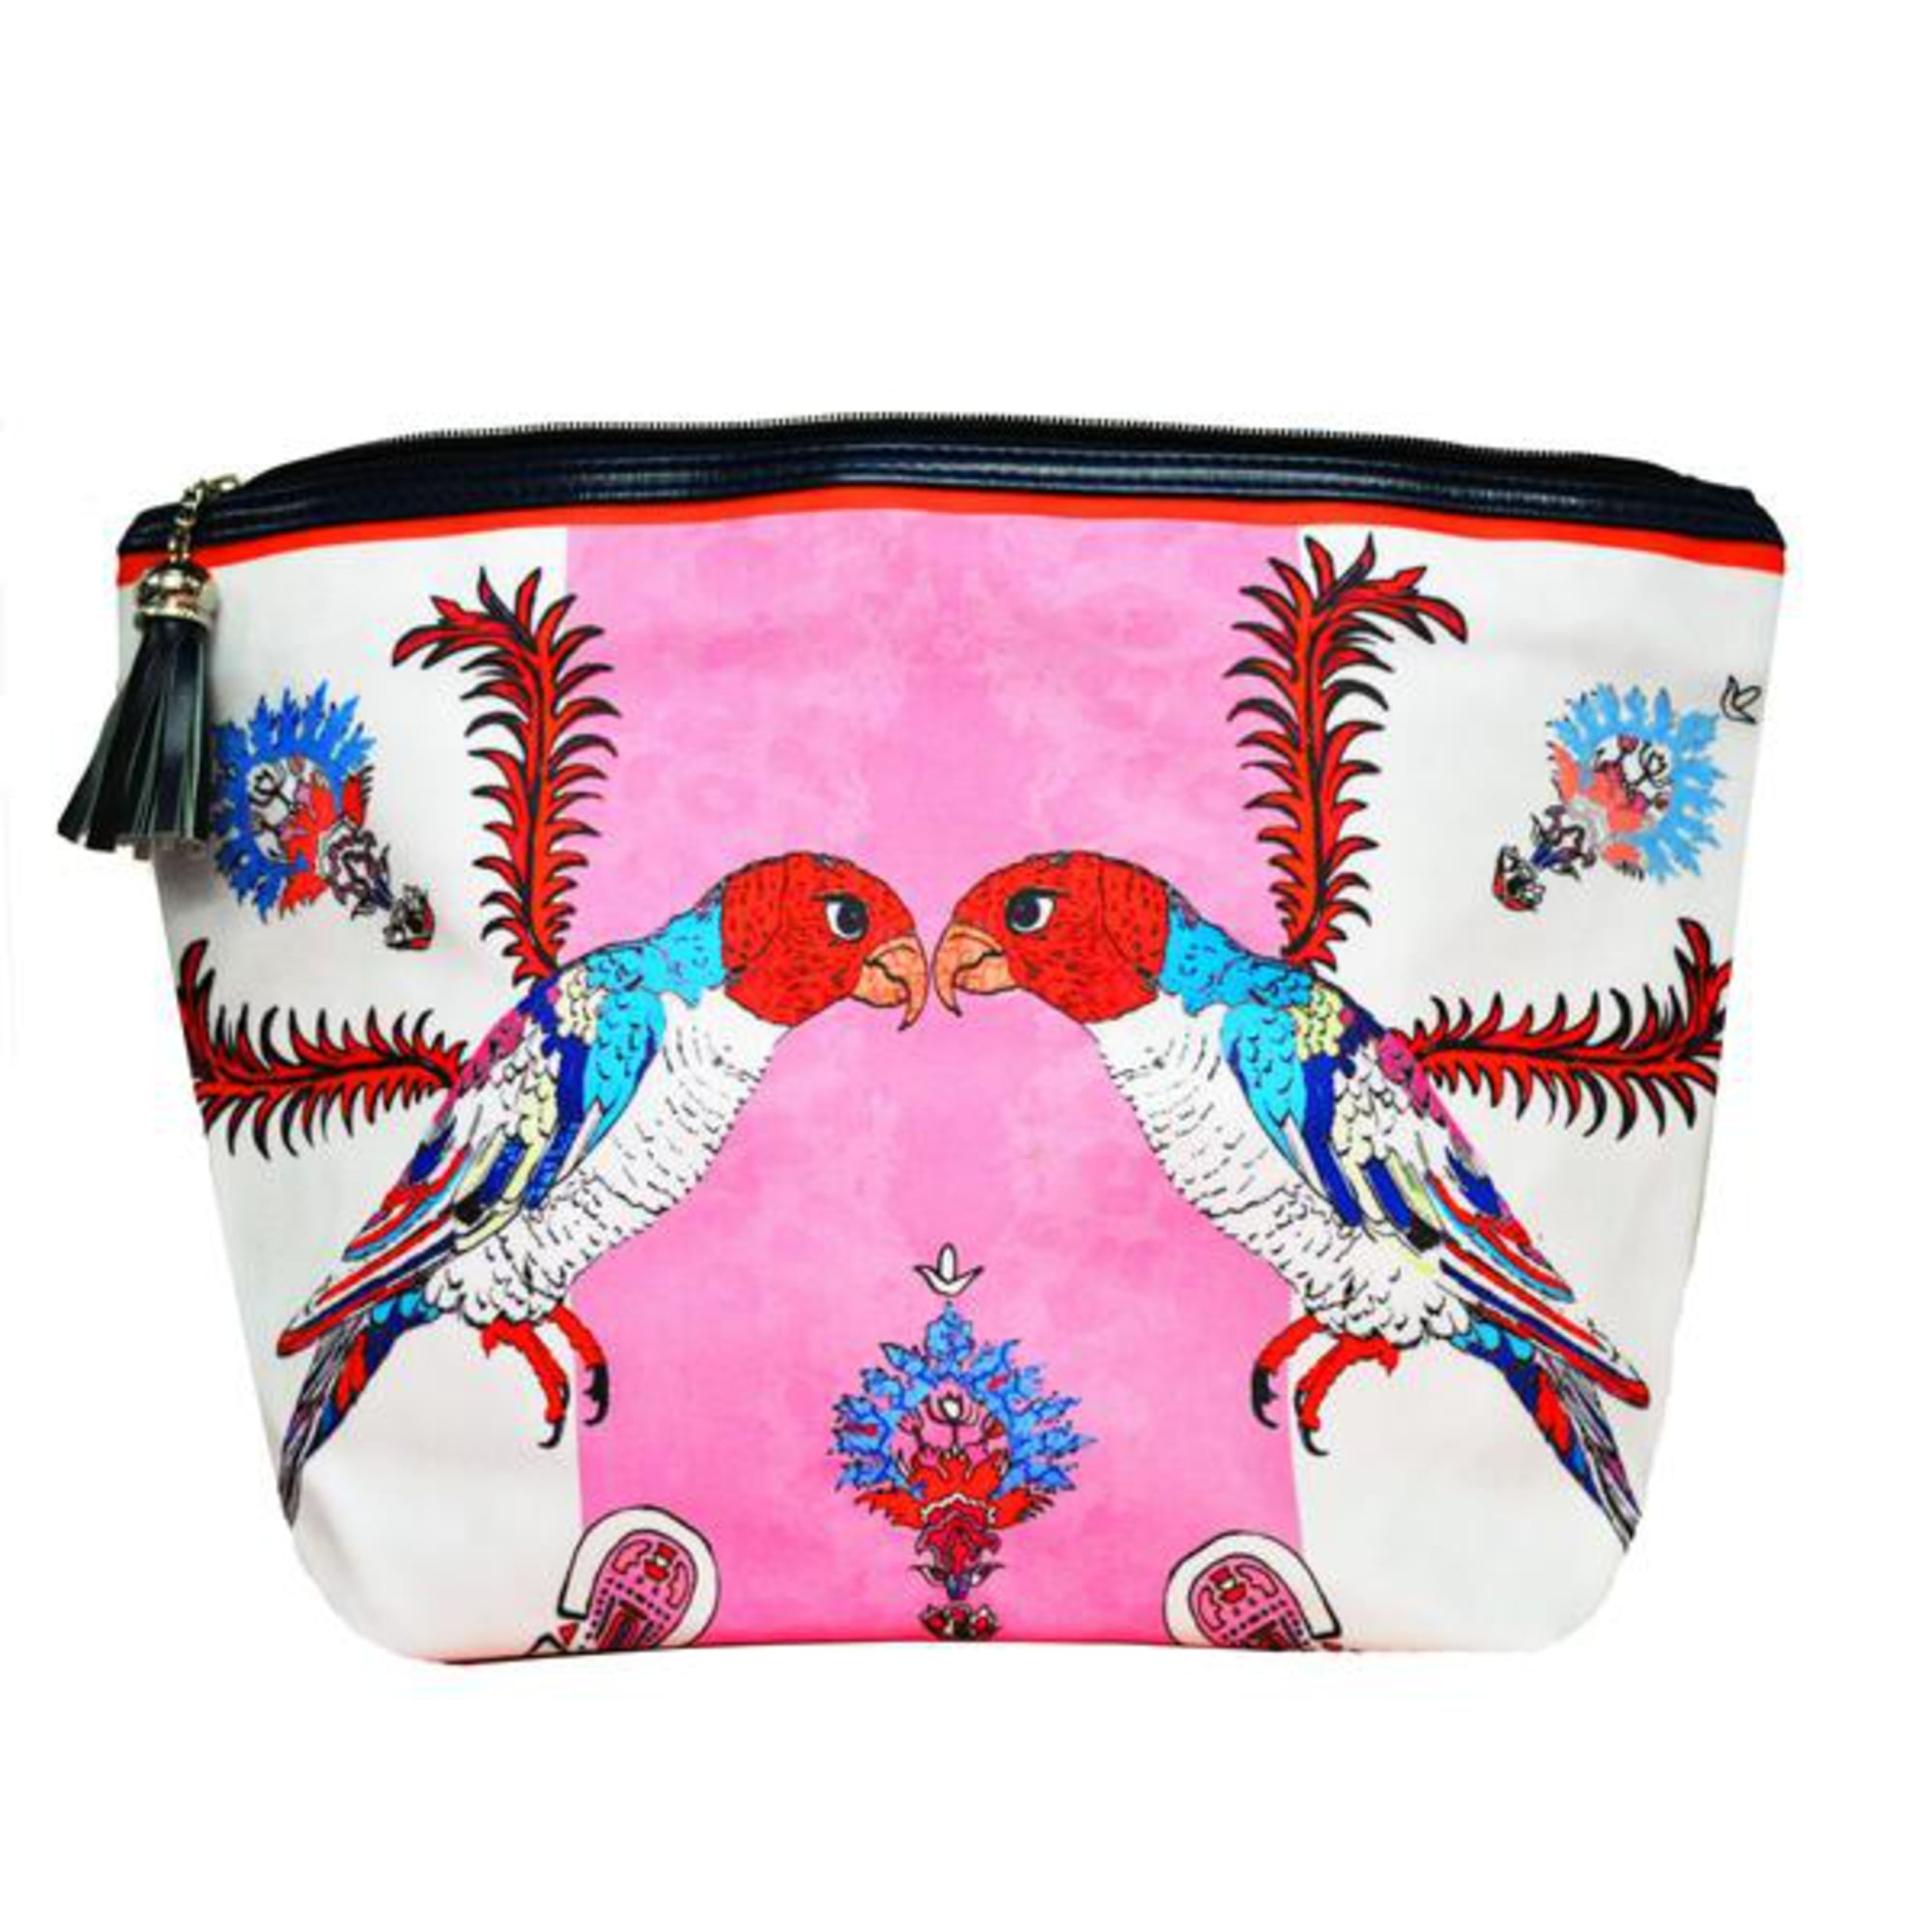 the love birds extra large washbag with gift box